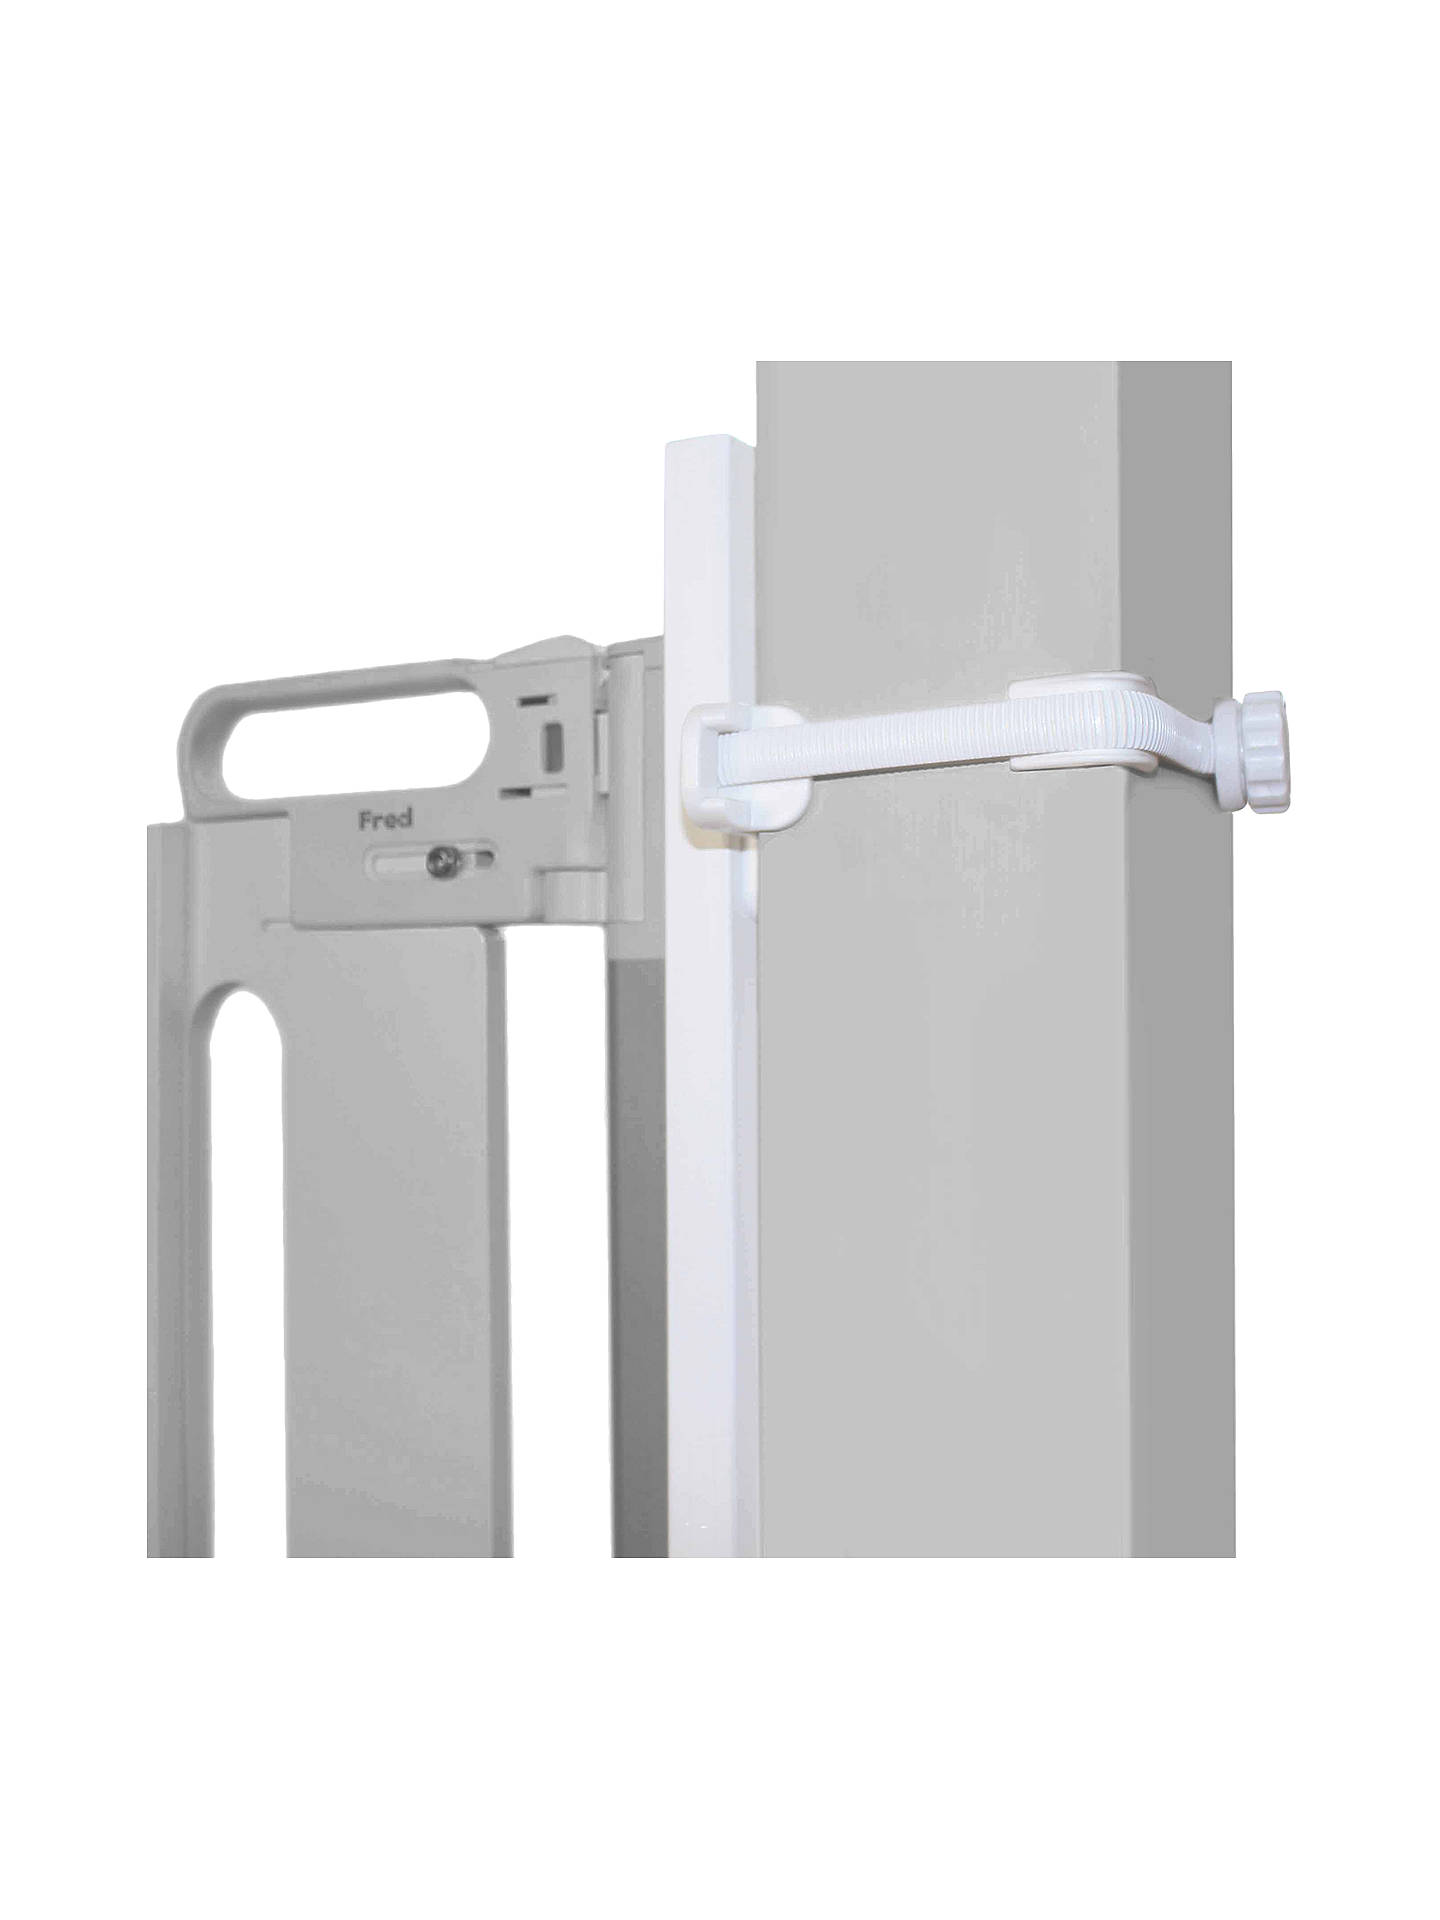 BuyFred Universal Stairpost Fitting Kit, White Online at johnlewis.com